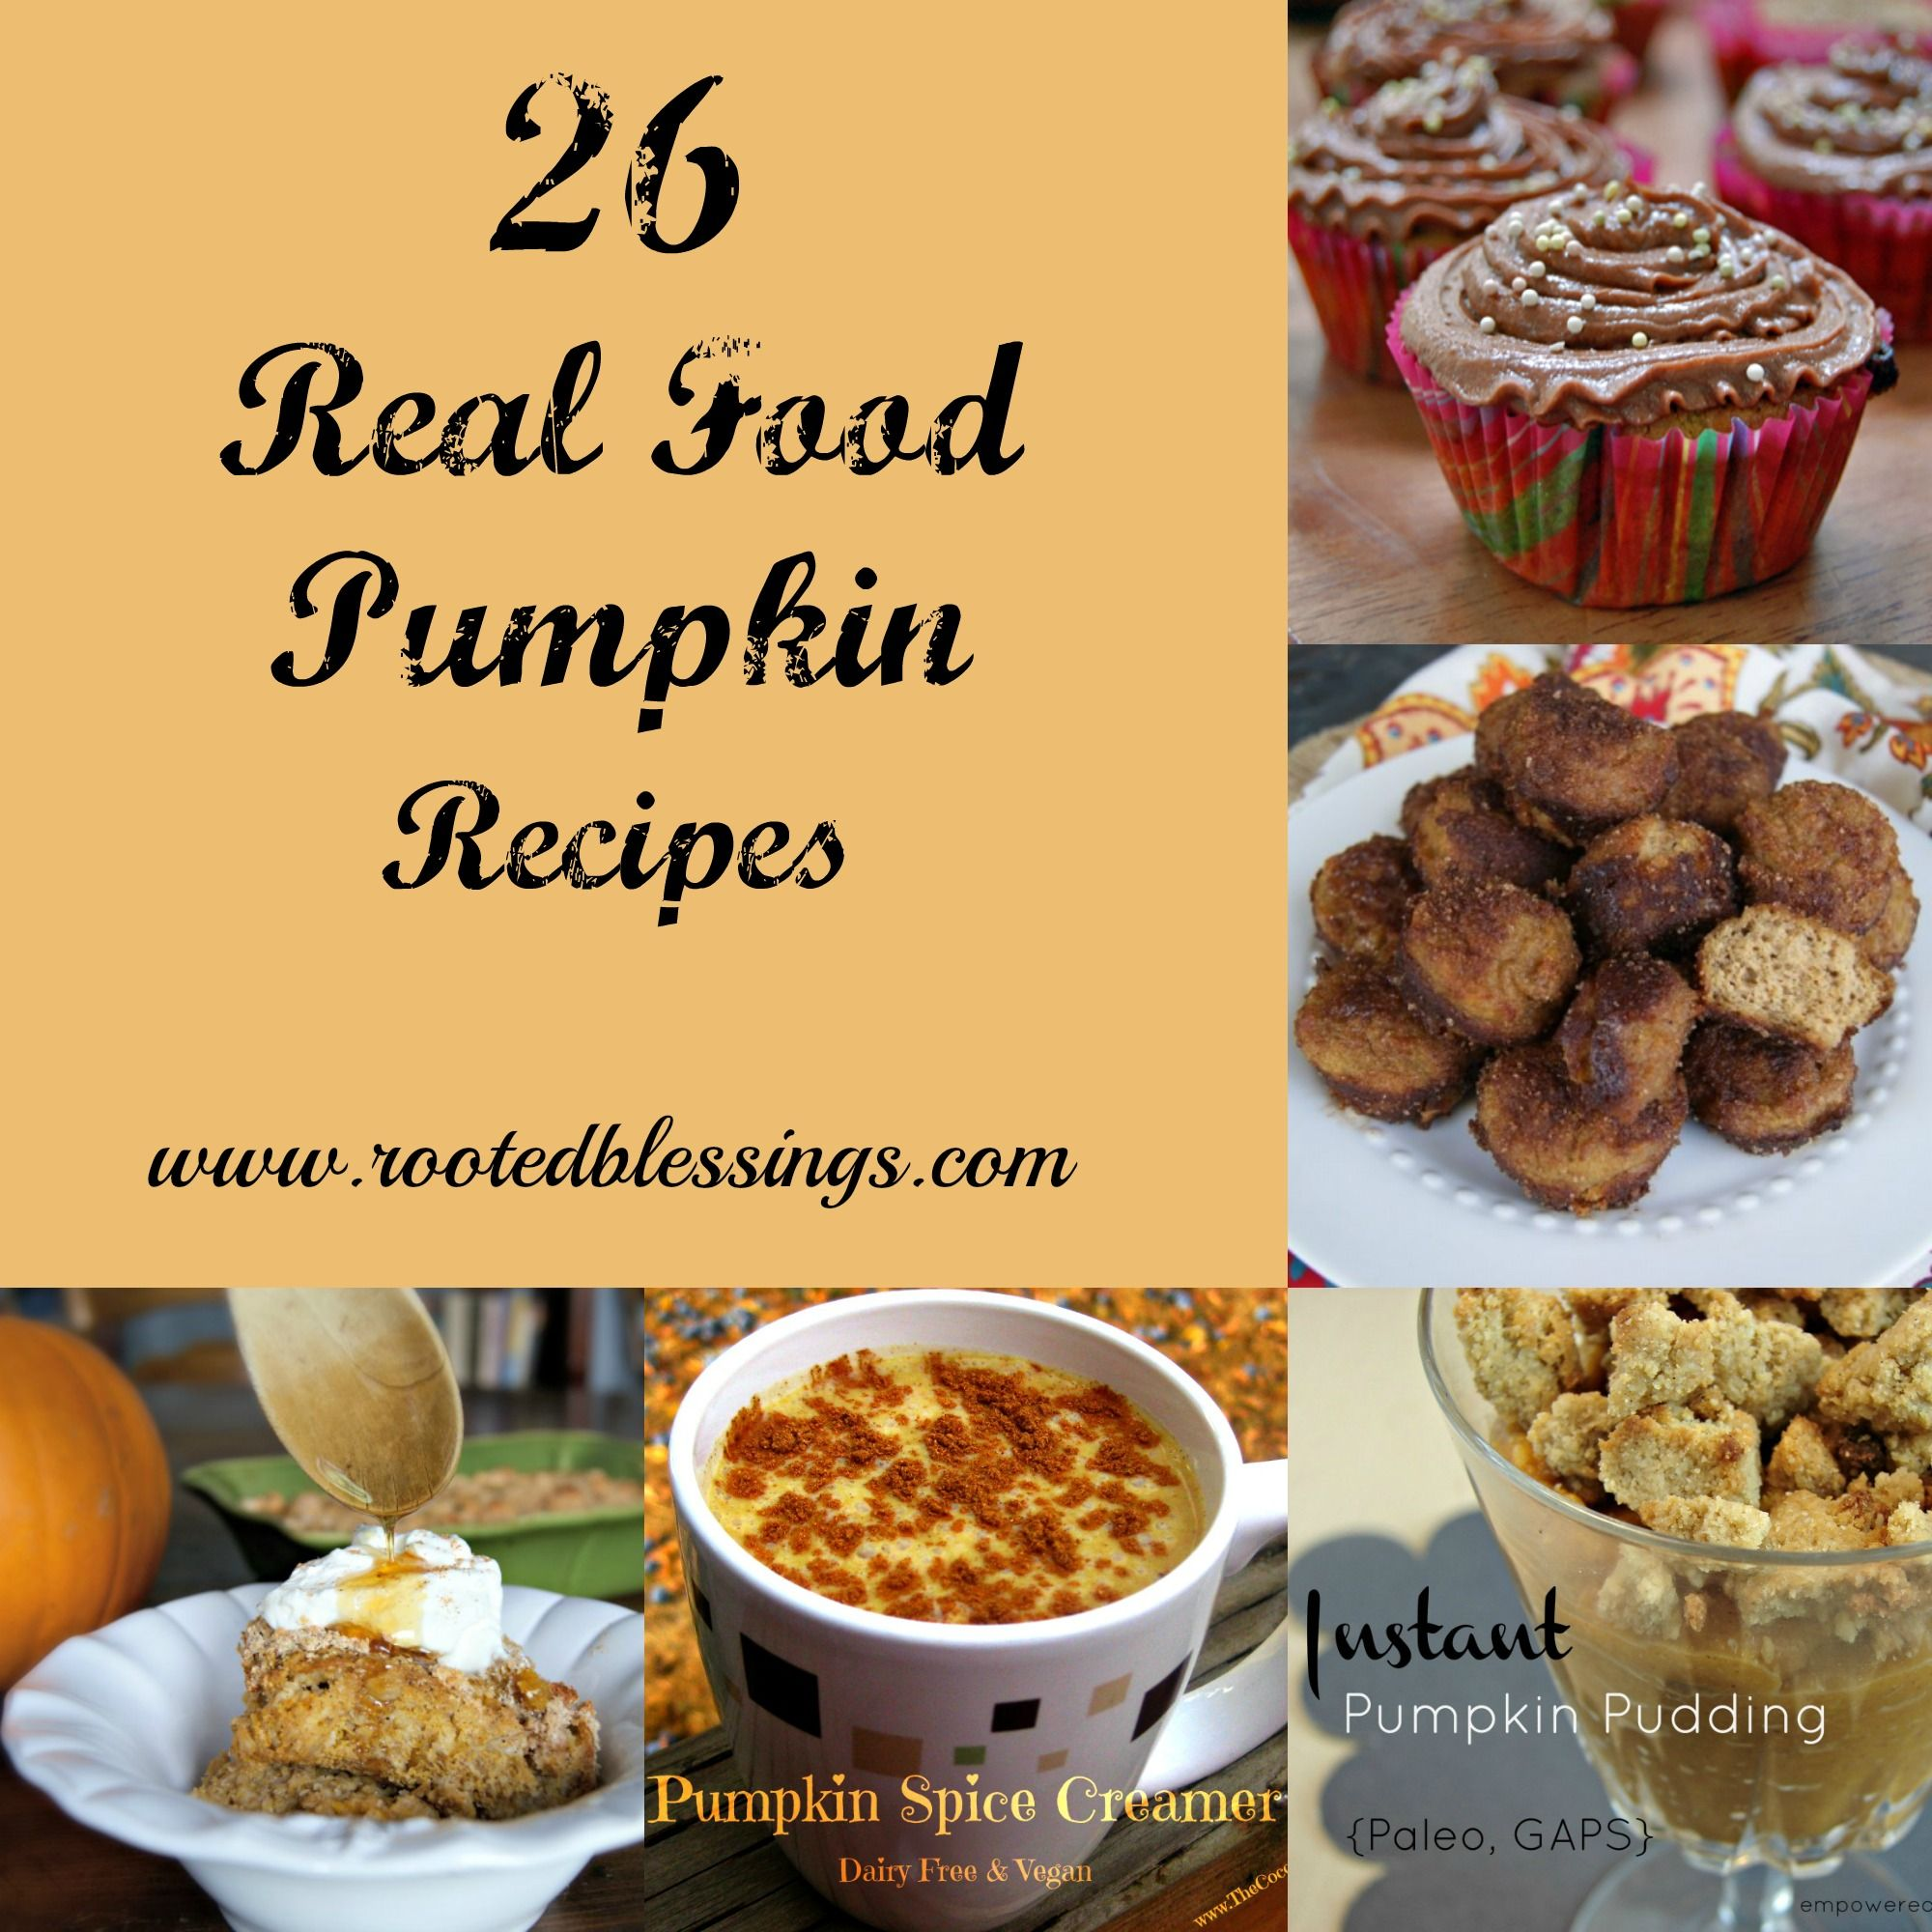 26 real food pumpkin recipes real foods foods and recipes 26 real food pumpkin recipes they look like good recipes but my browser isn forumfinder Gallery